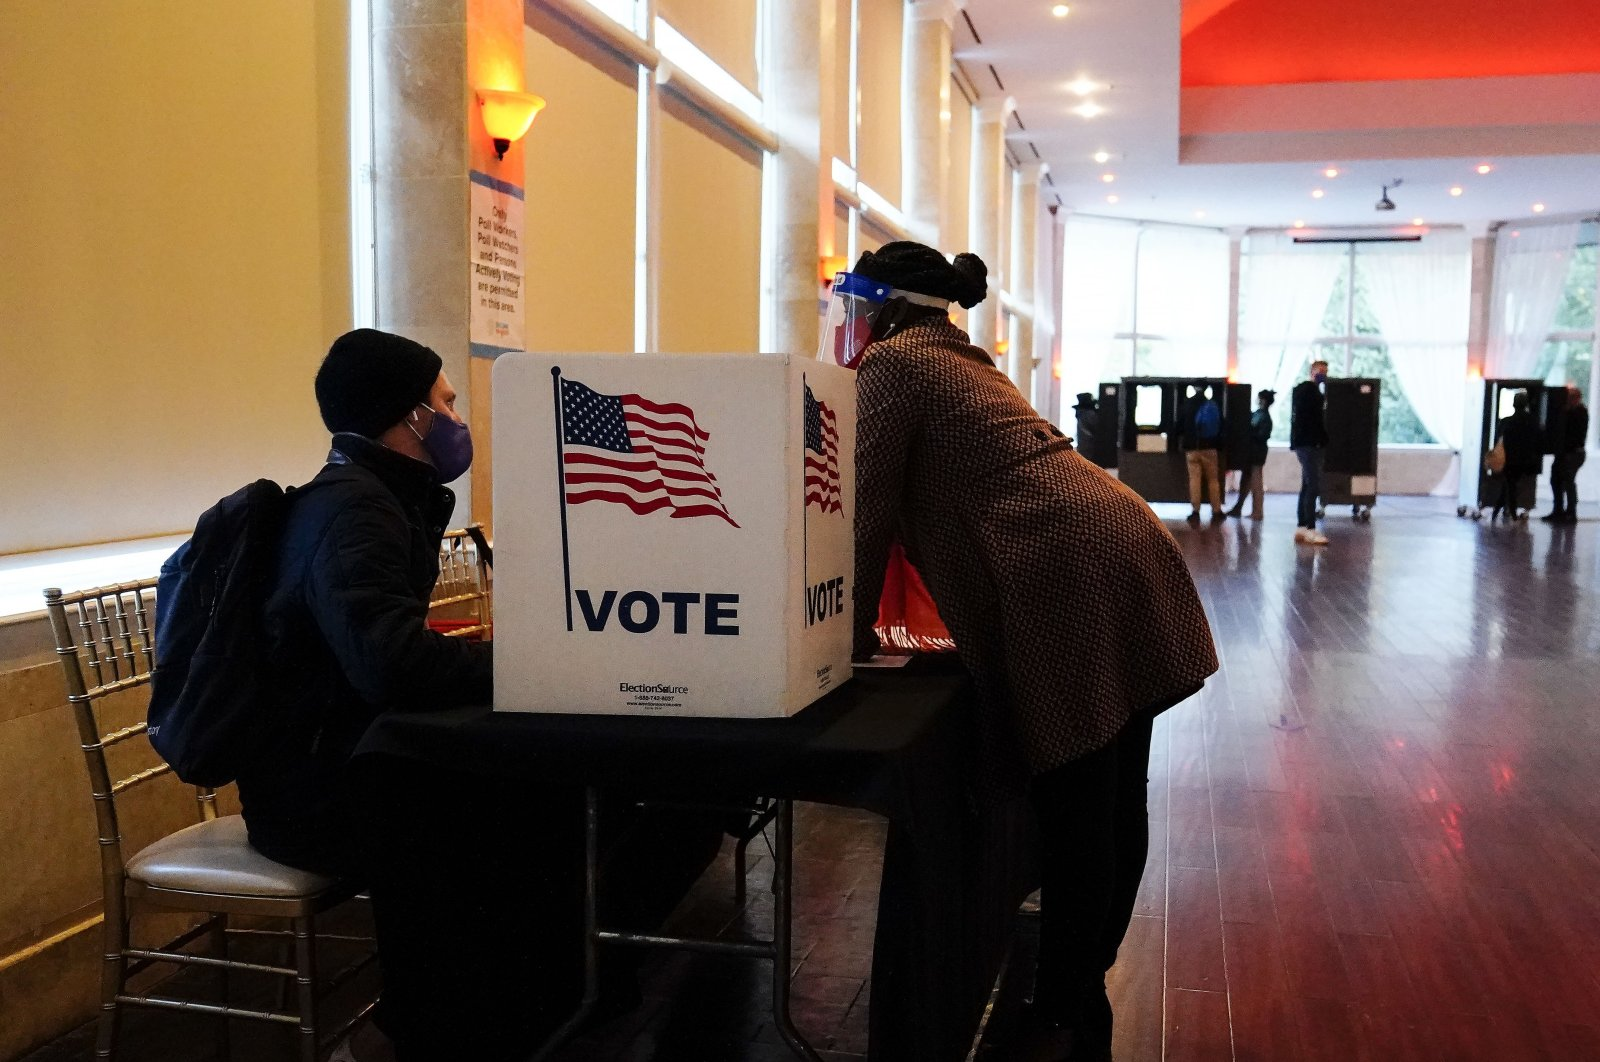 A poll worker talks to a voter before they vote on a paper ballot on Election Day in Atlanta, Georgia, Nov. 3, 2020. (AP Photo)